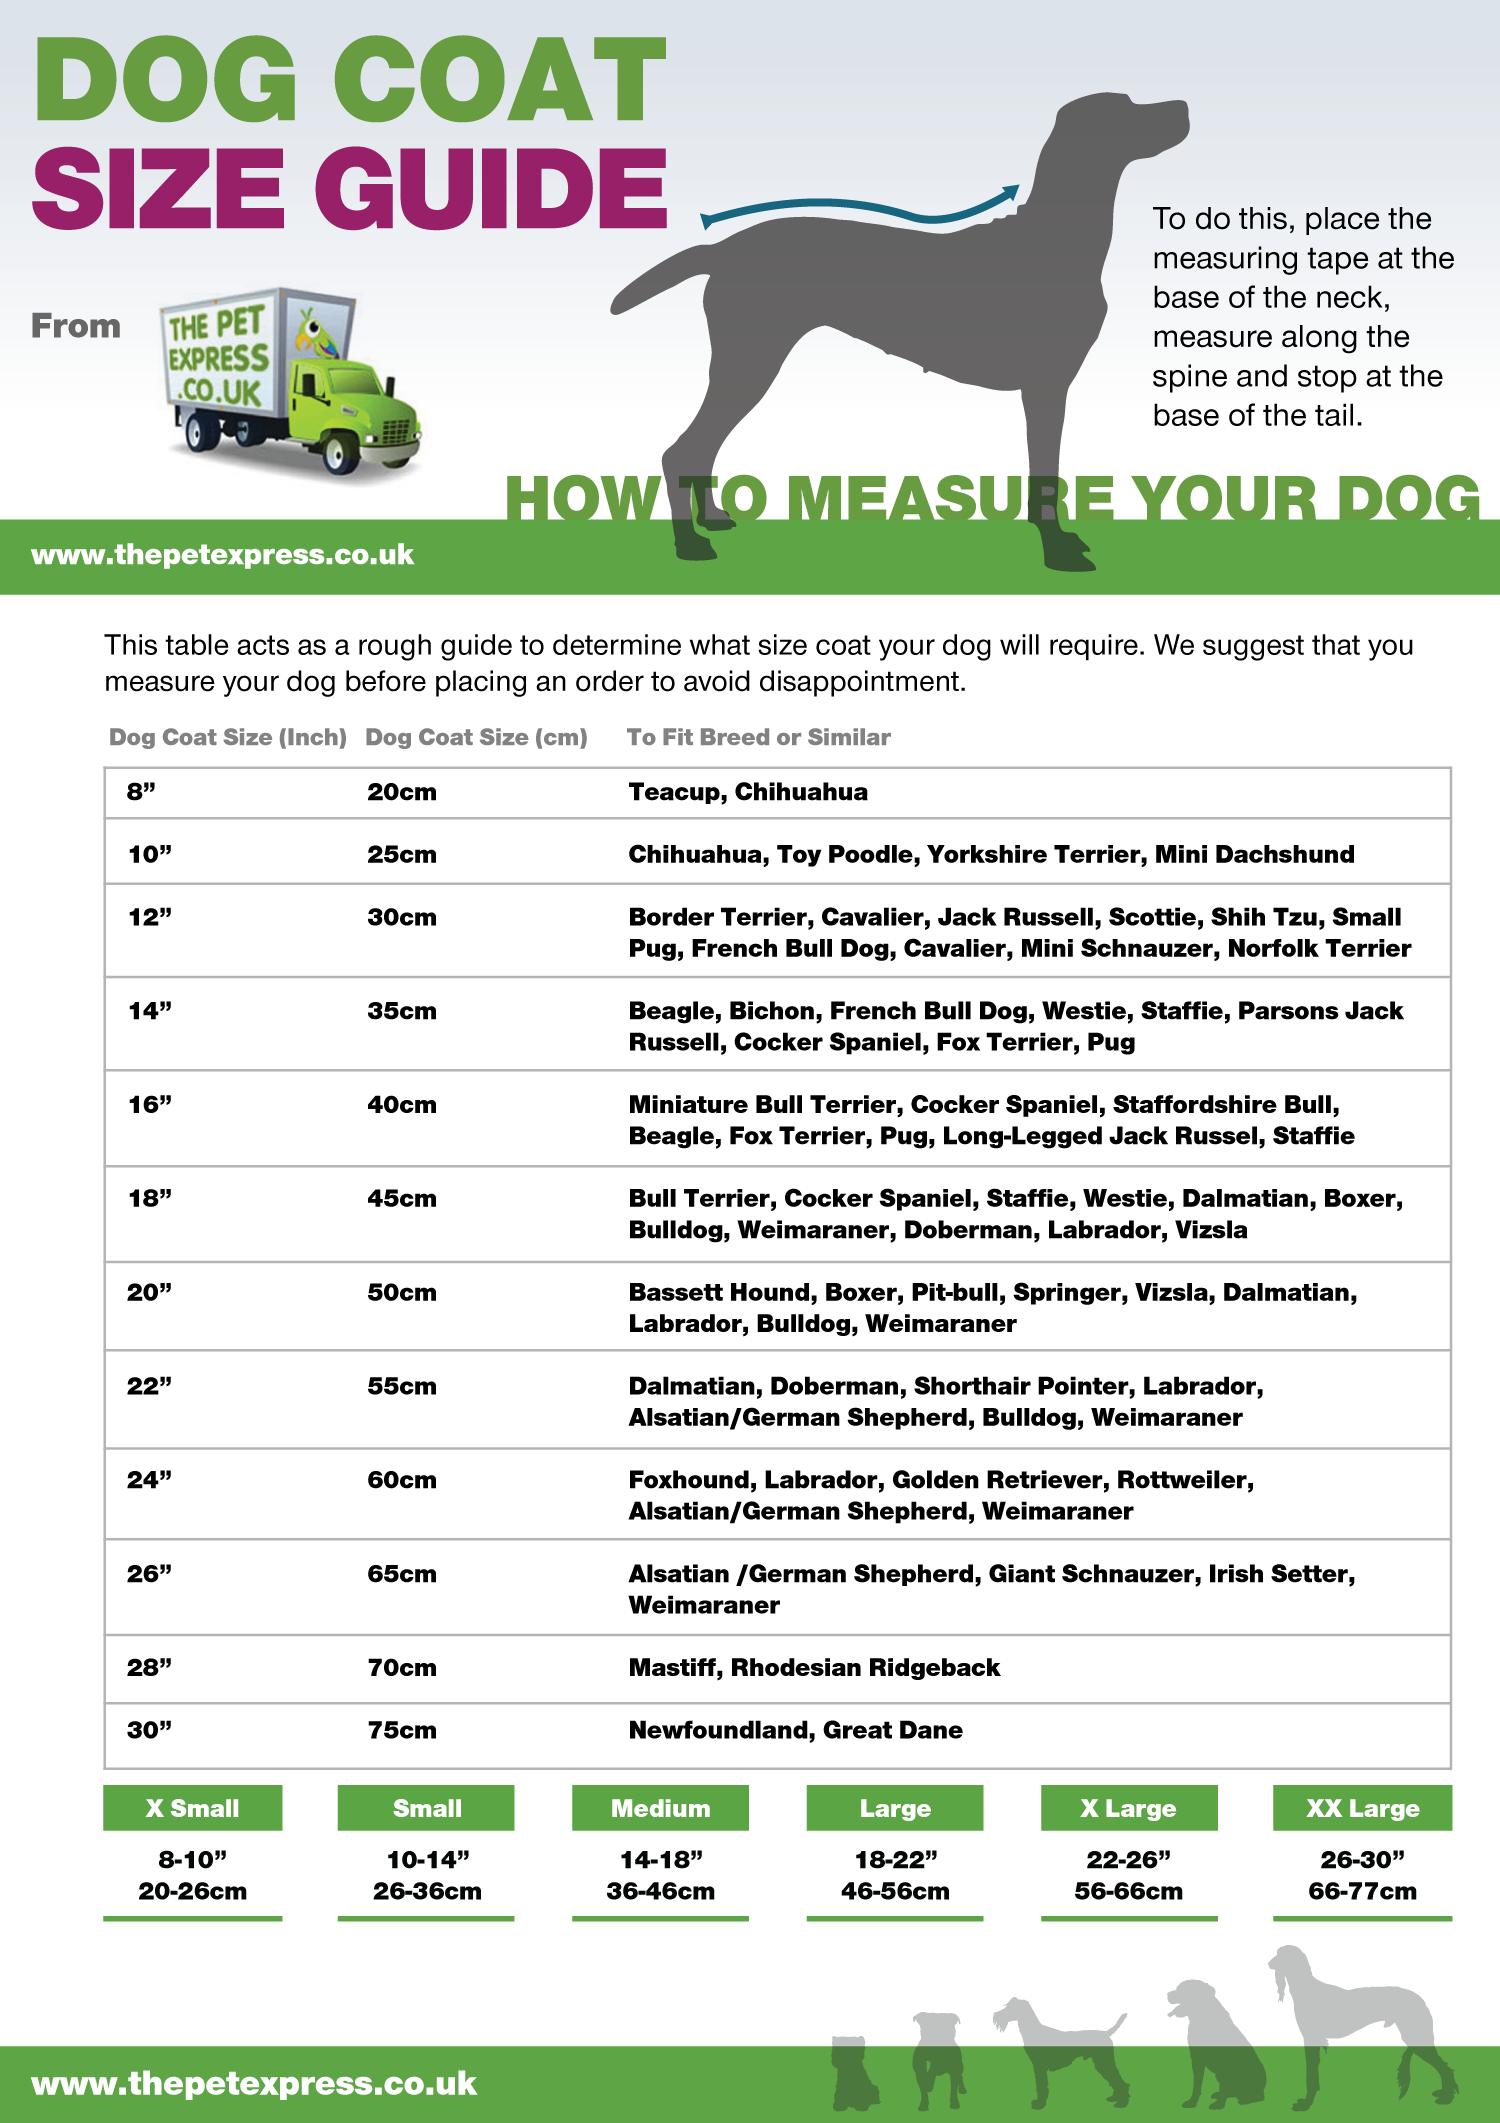 Dog Coat Size Guide Infographic